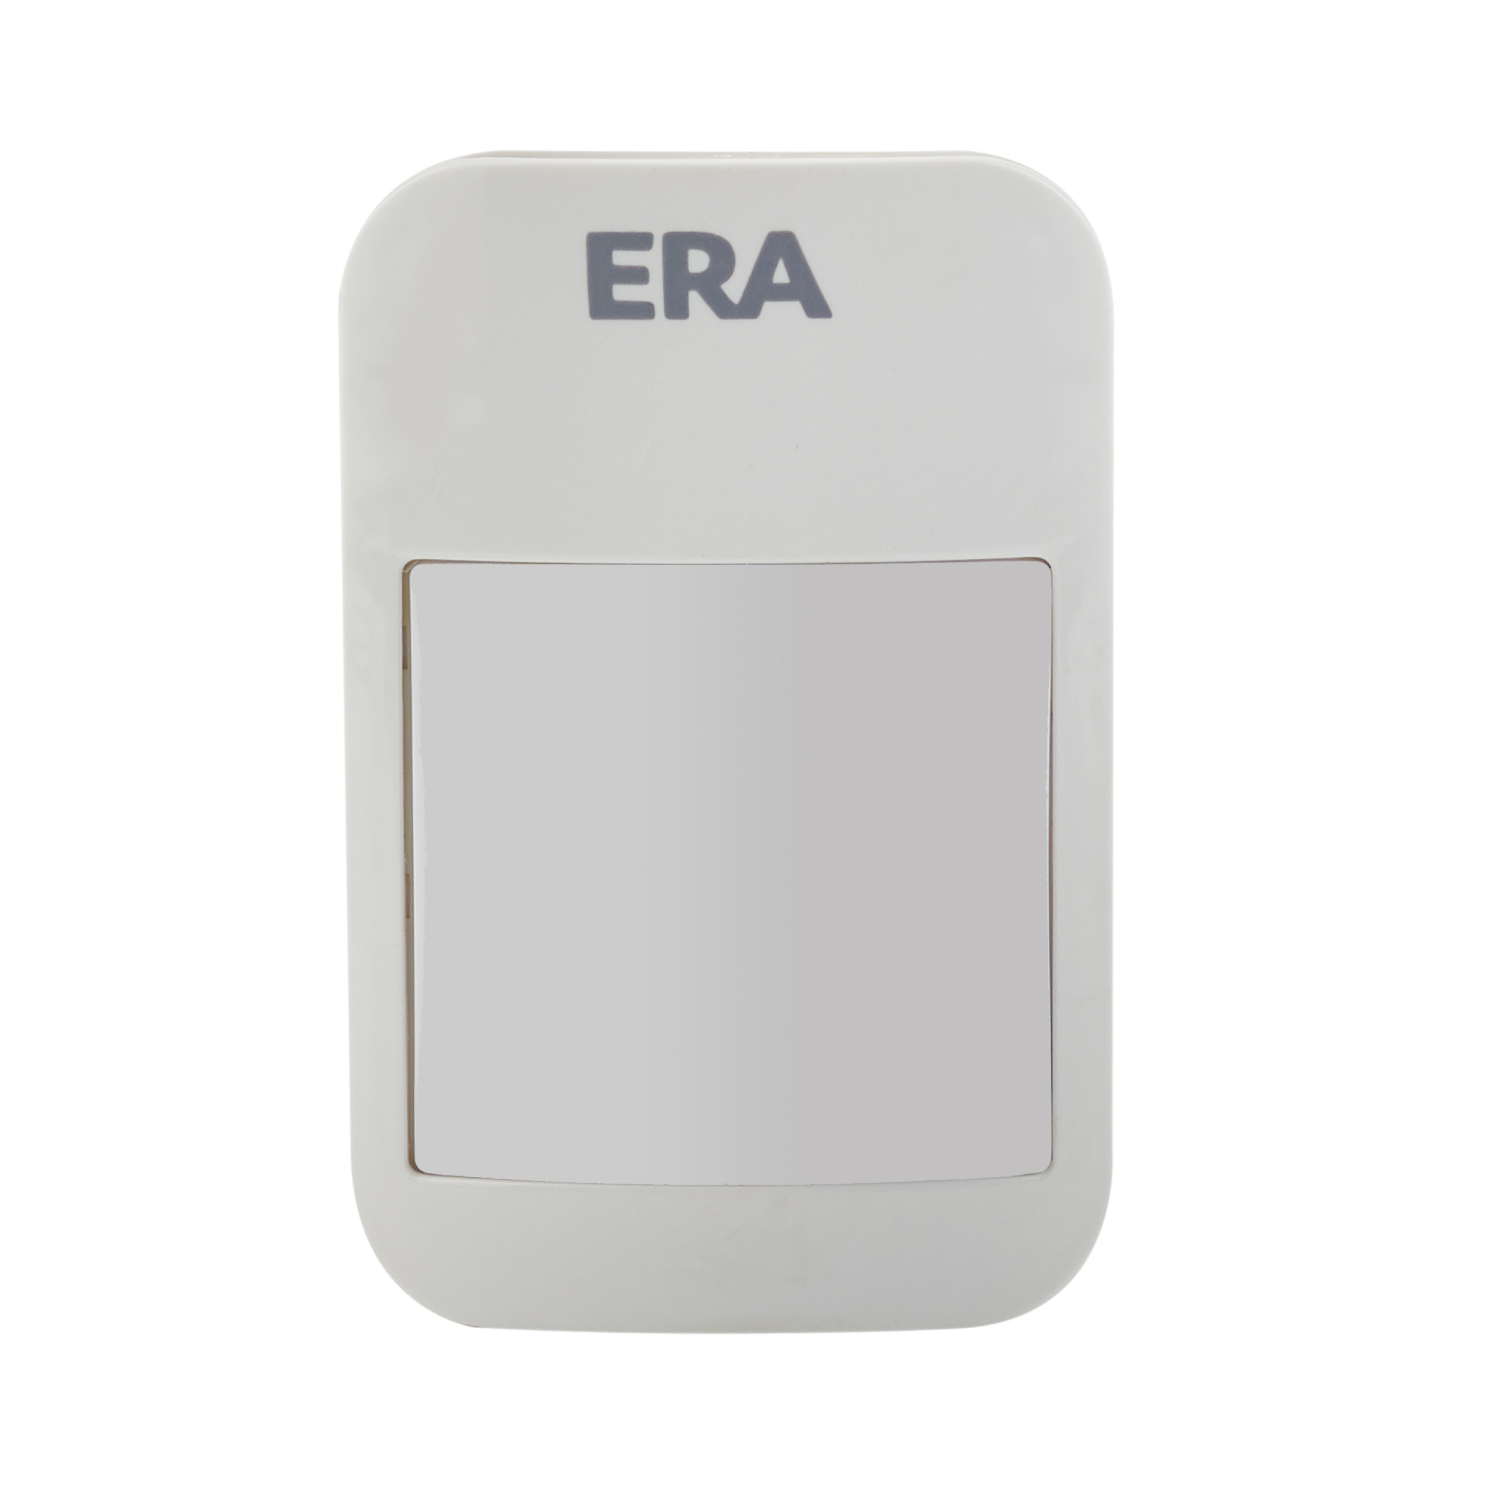 ERA Protect Pet Friendly PIR Motion Sensor